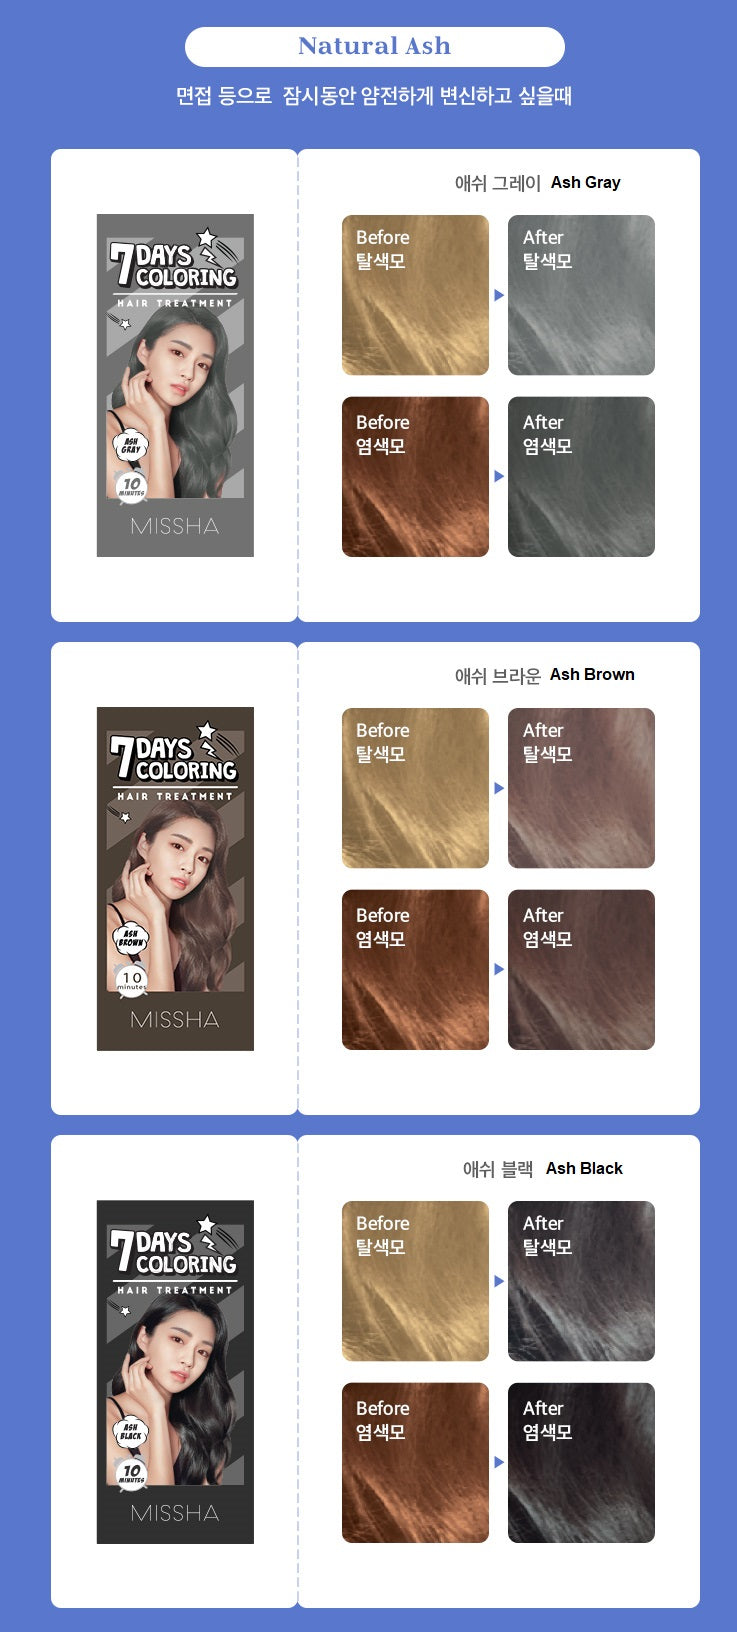 MISSHA 7Days Coloring Hair Treatment